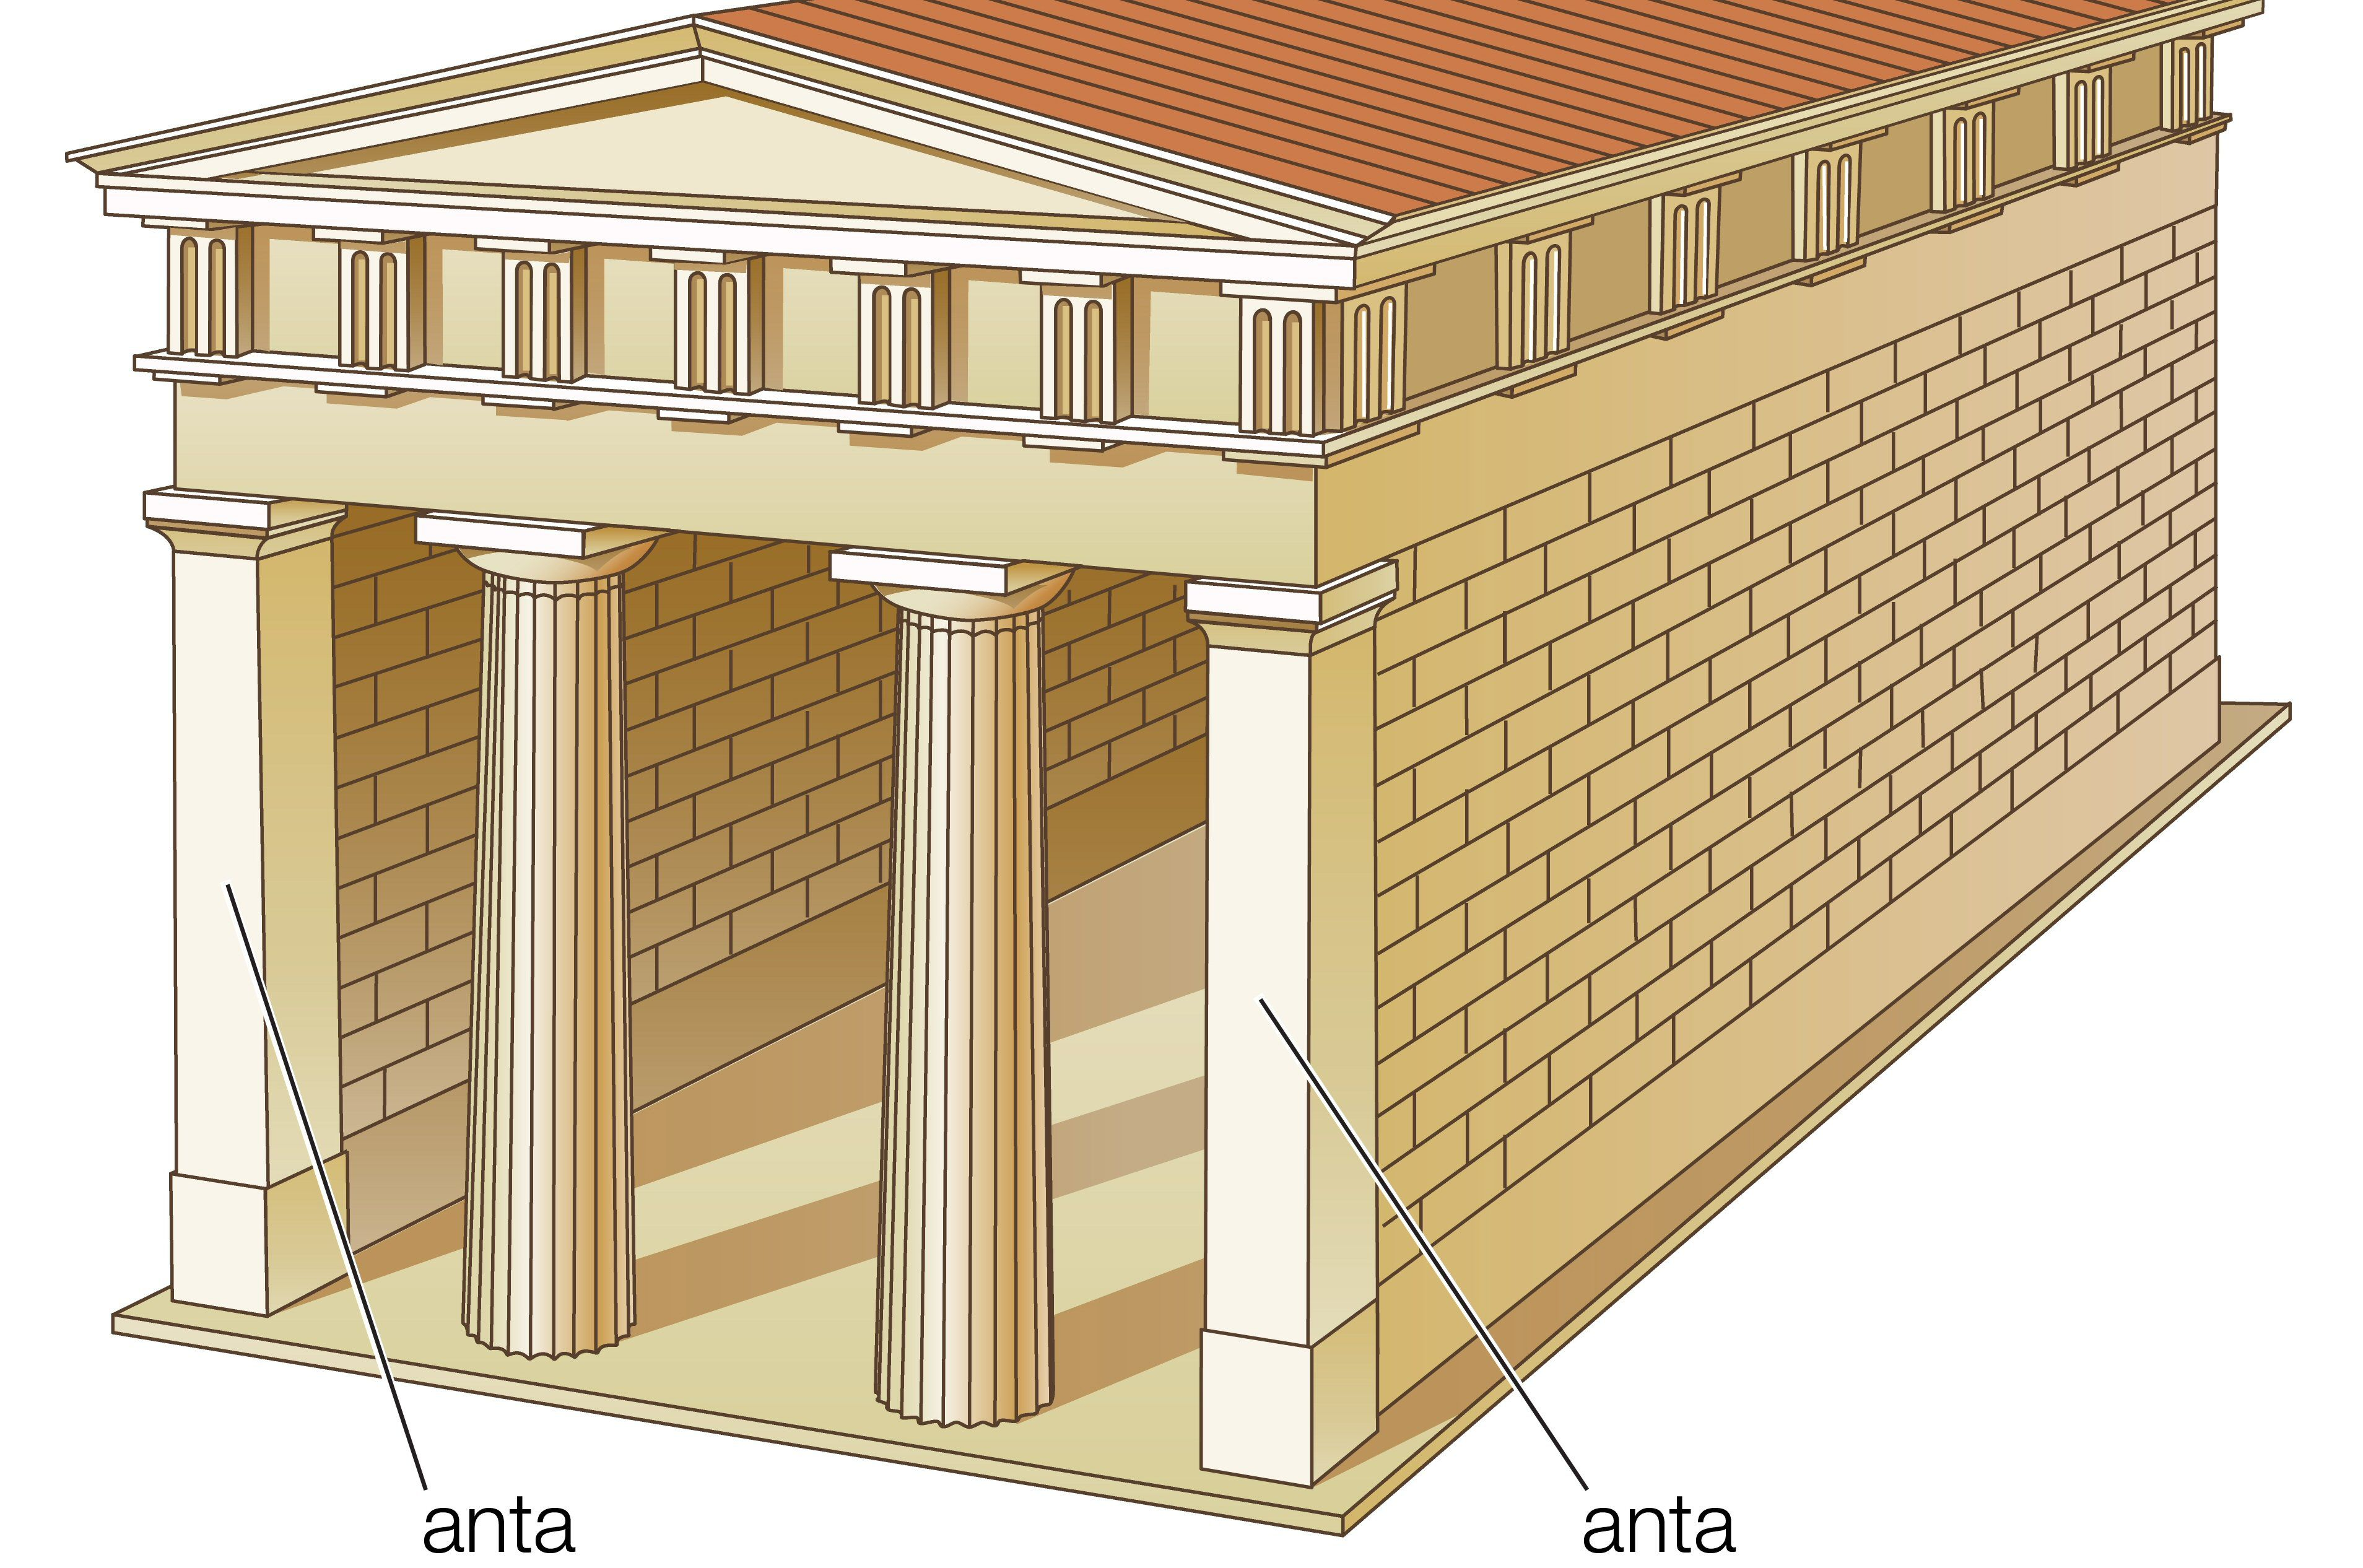 illustration of rectangular Roman temple, red roof, two columns between two antae on the corners